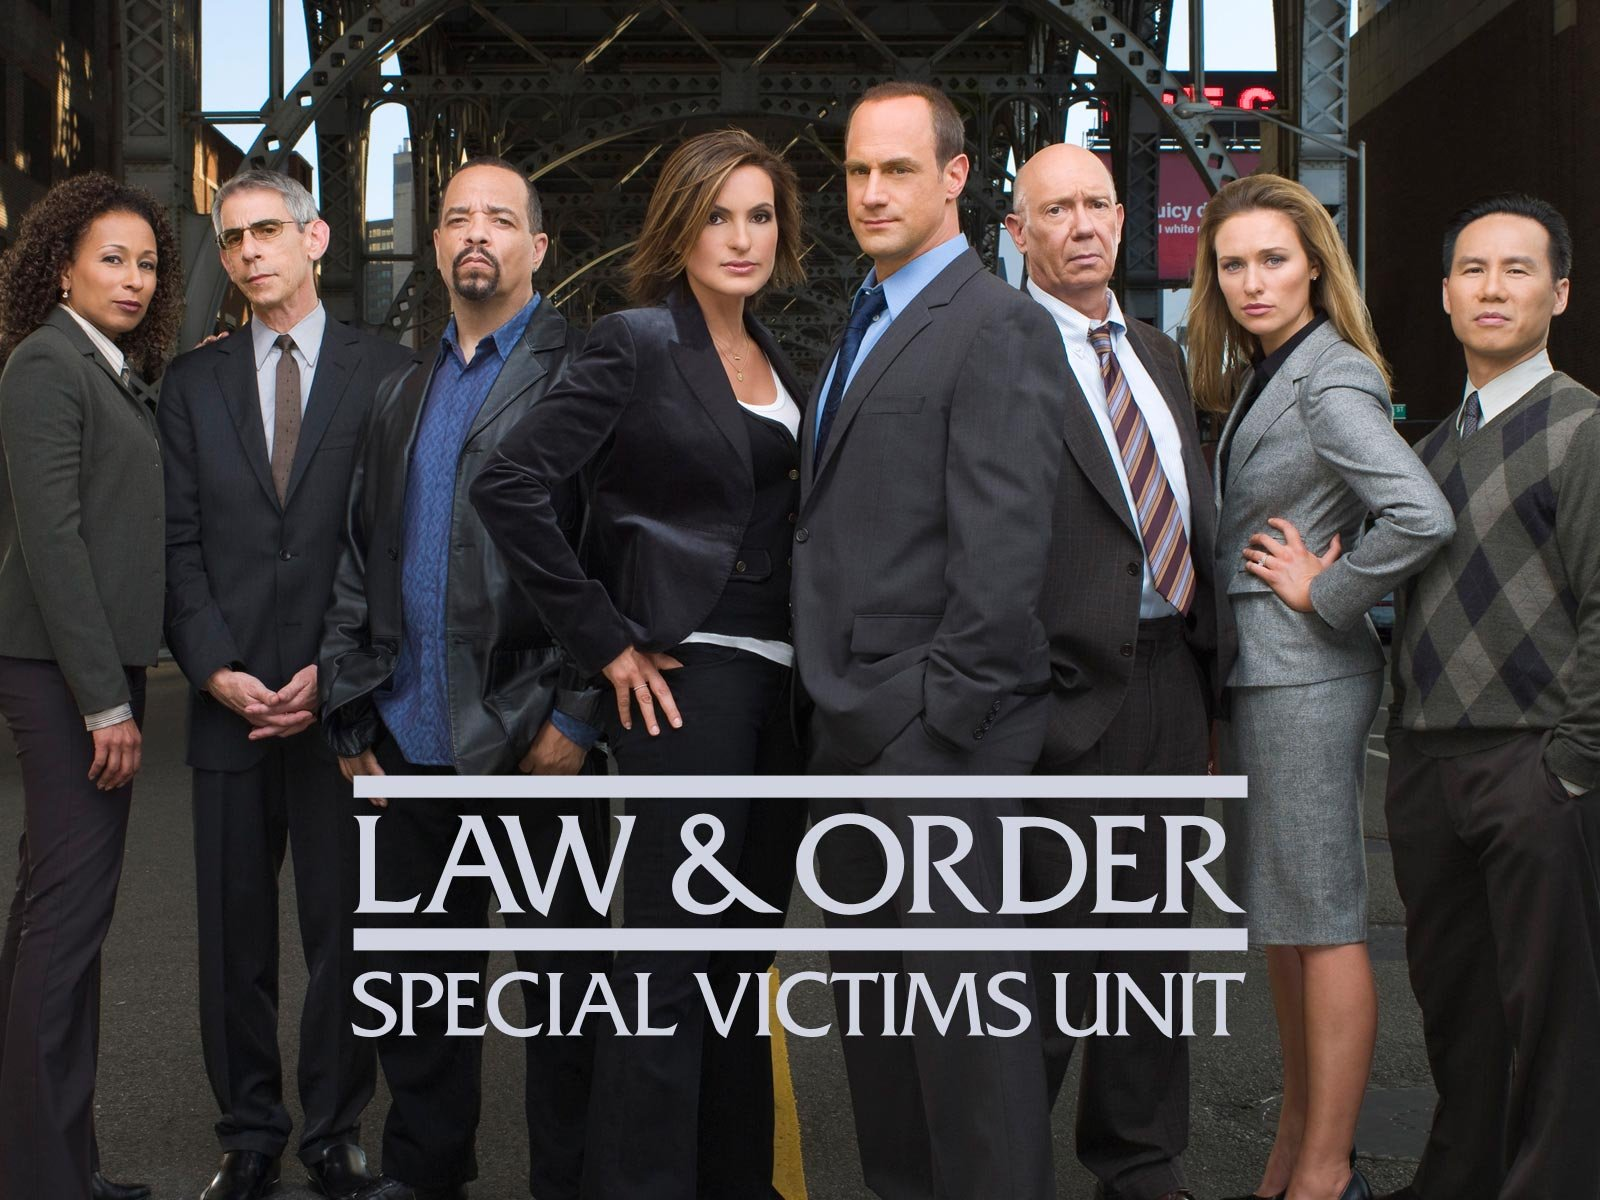 Law and Order SVU Season 23 Two Ex-Main Cast Members Disappointed Fans!